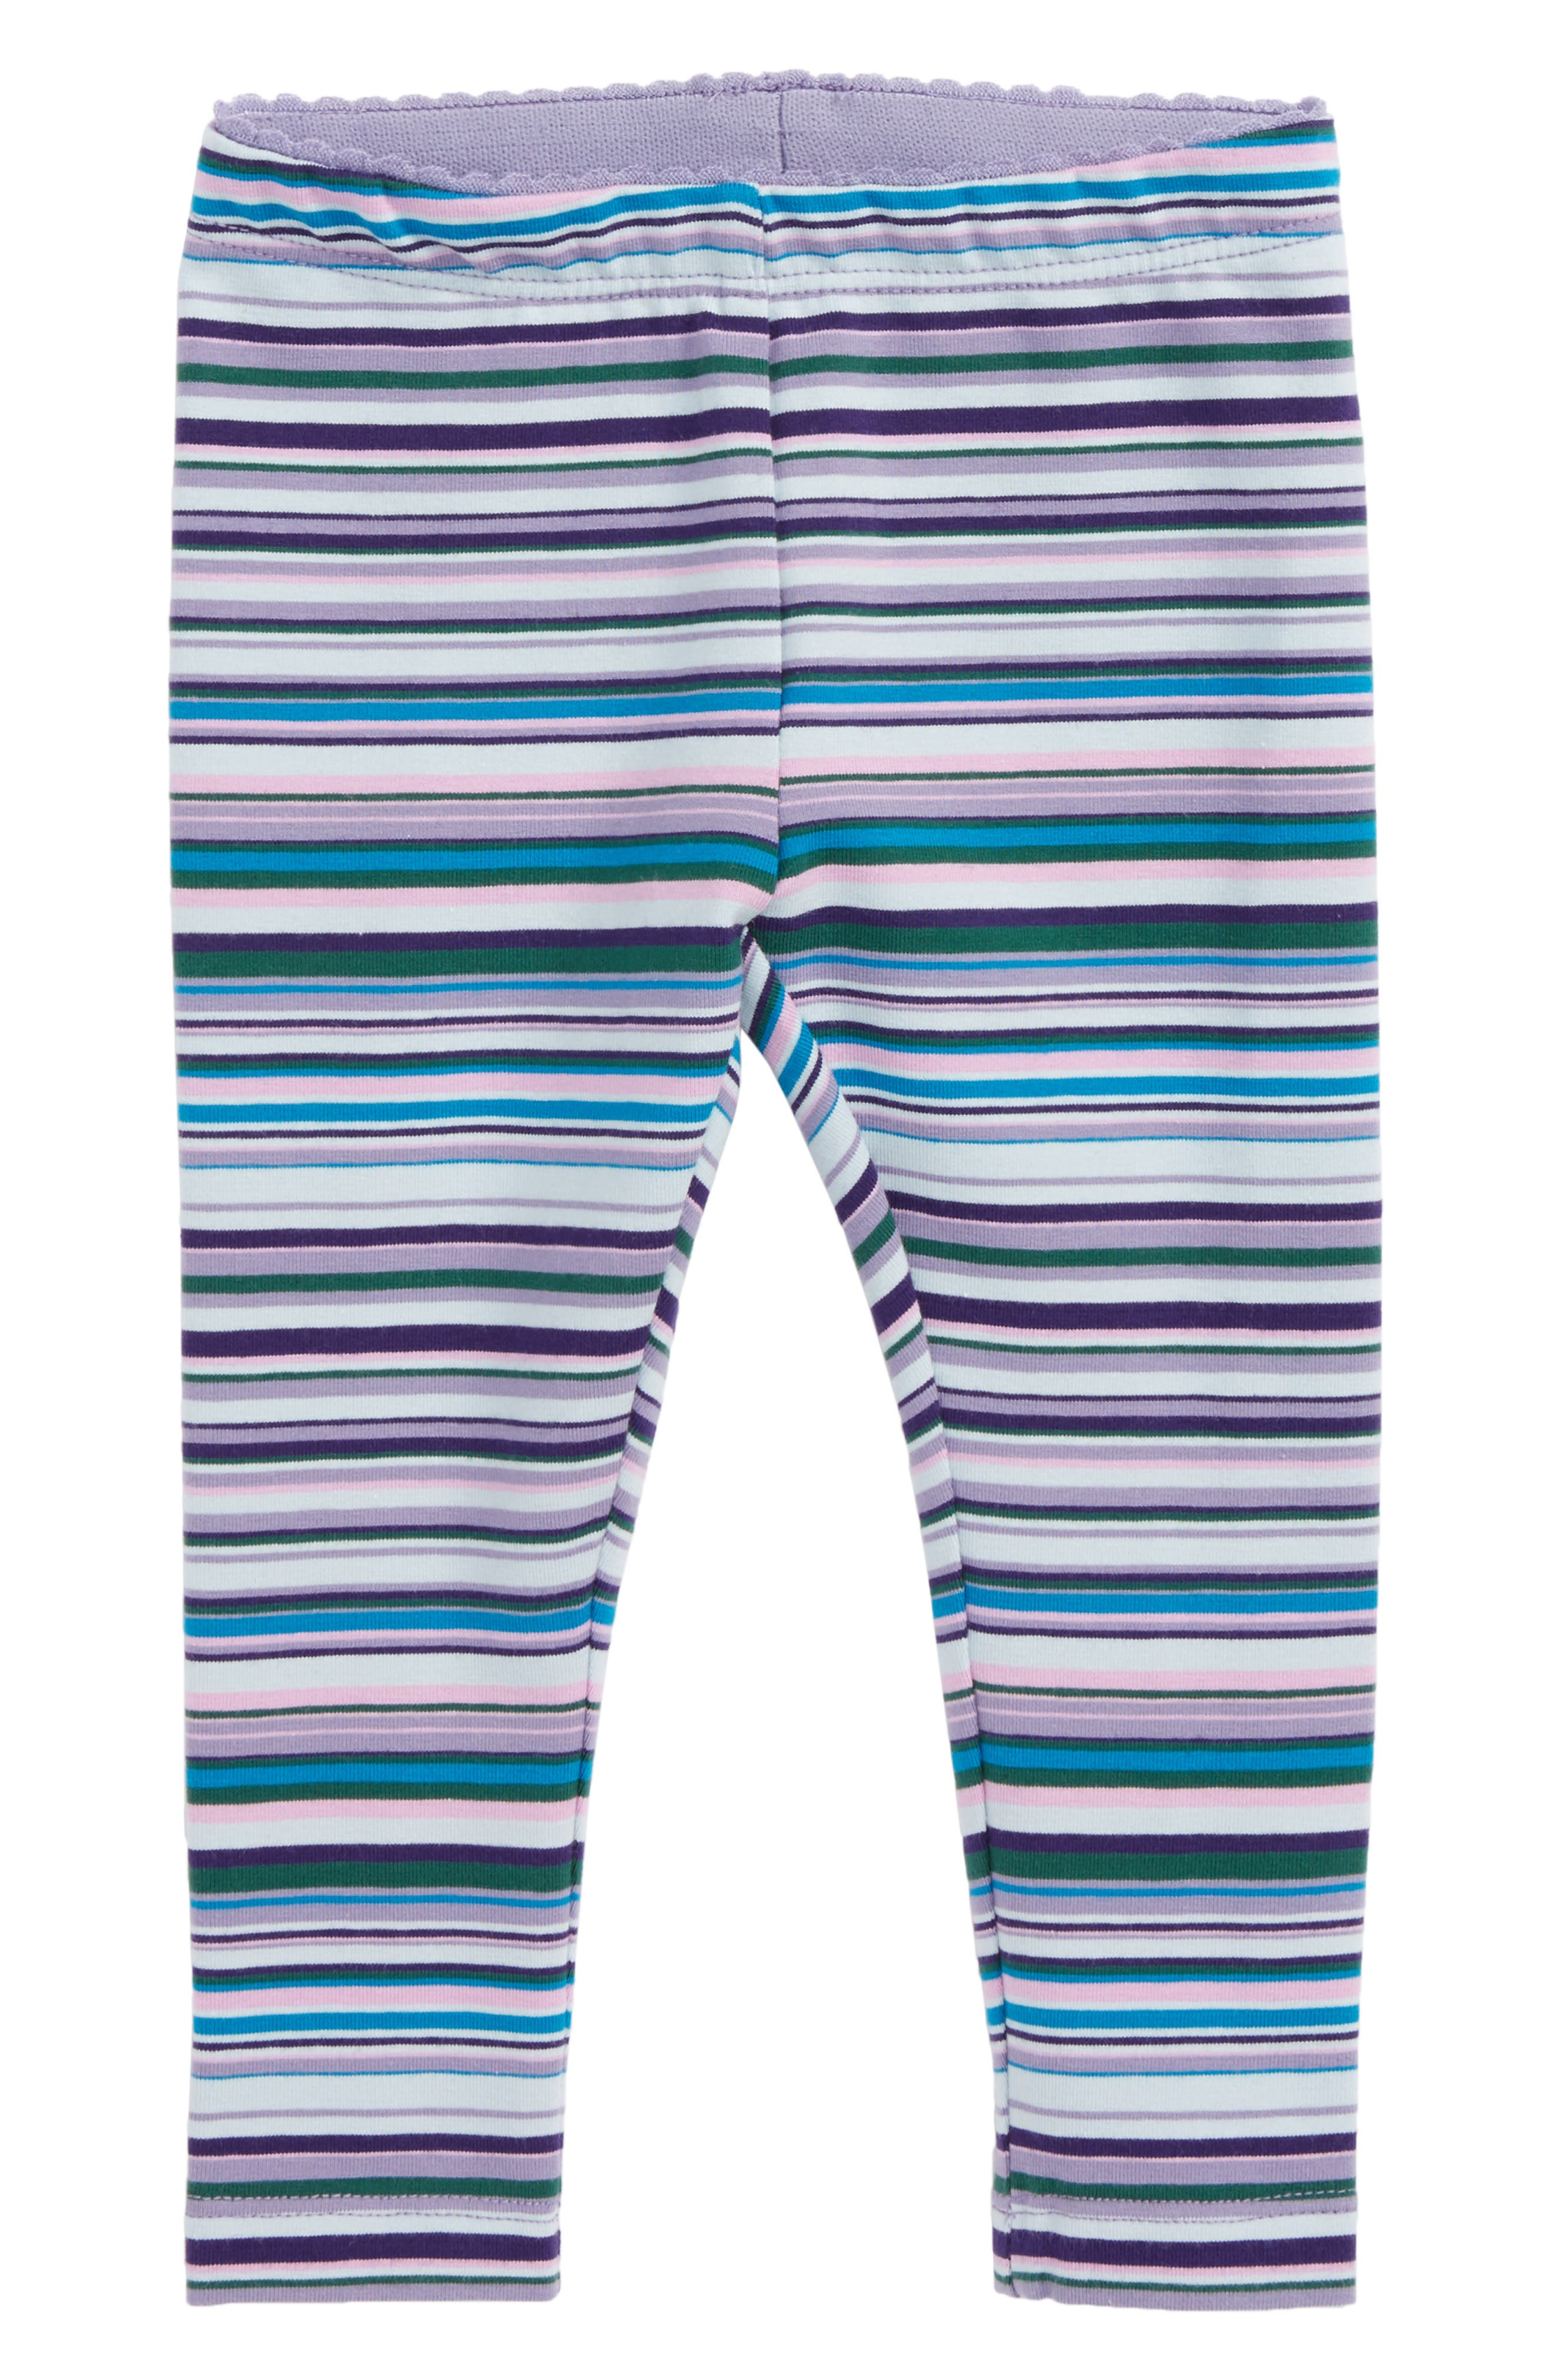 Stripe Leggings,                         Main,                         color, Taffy